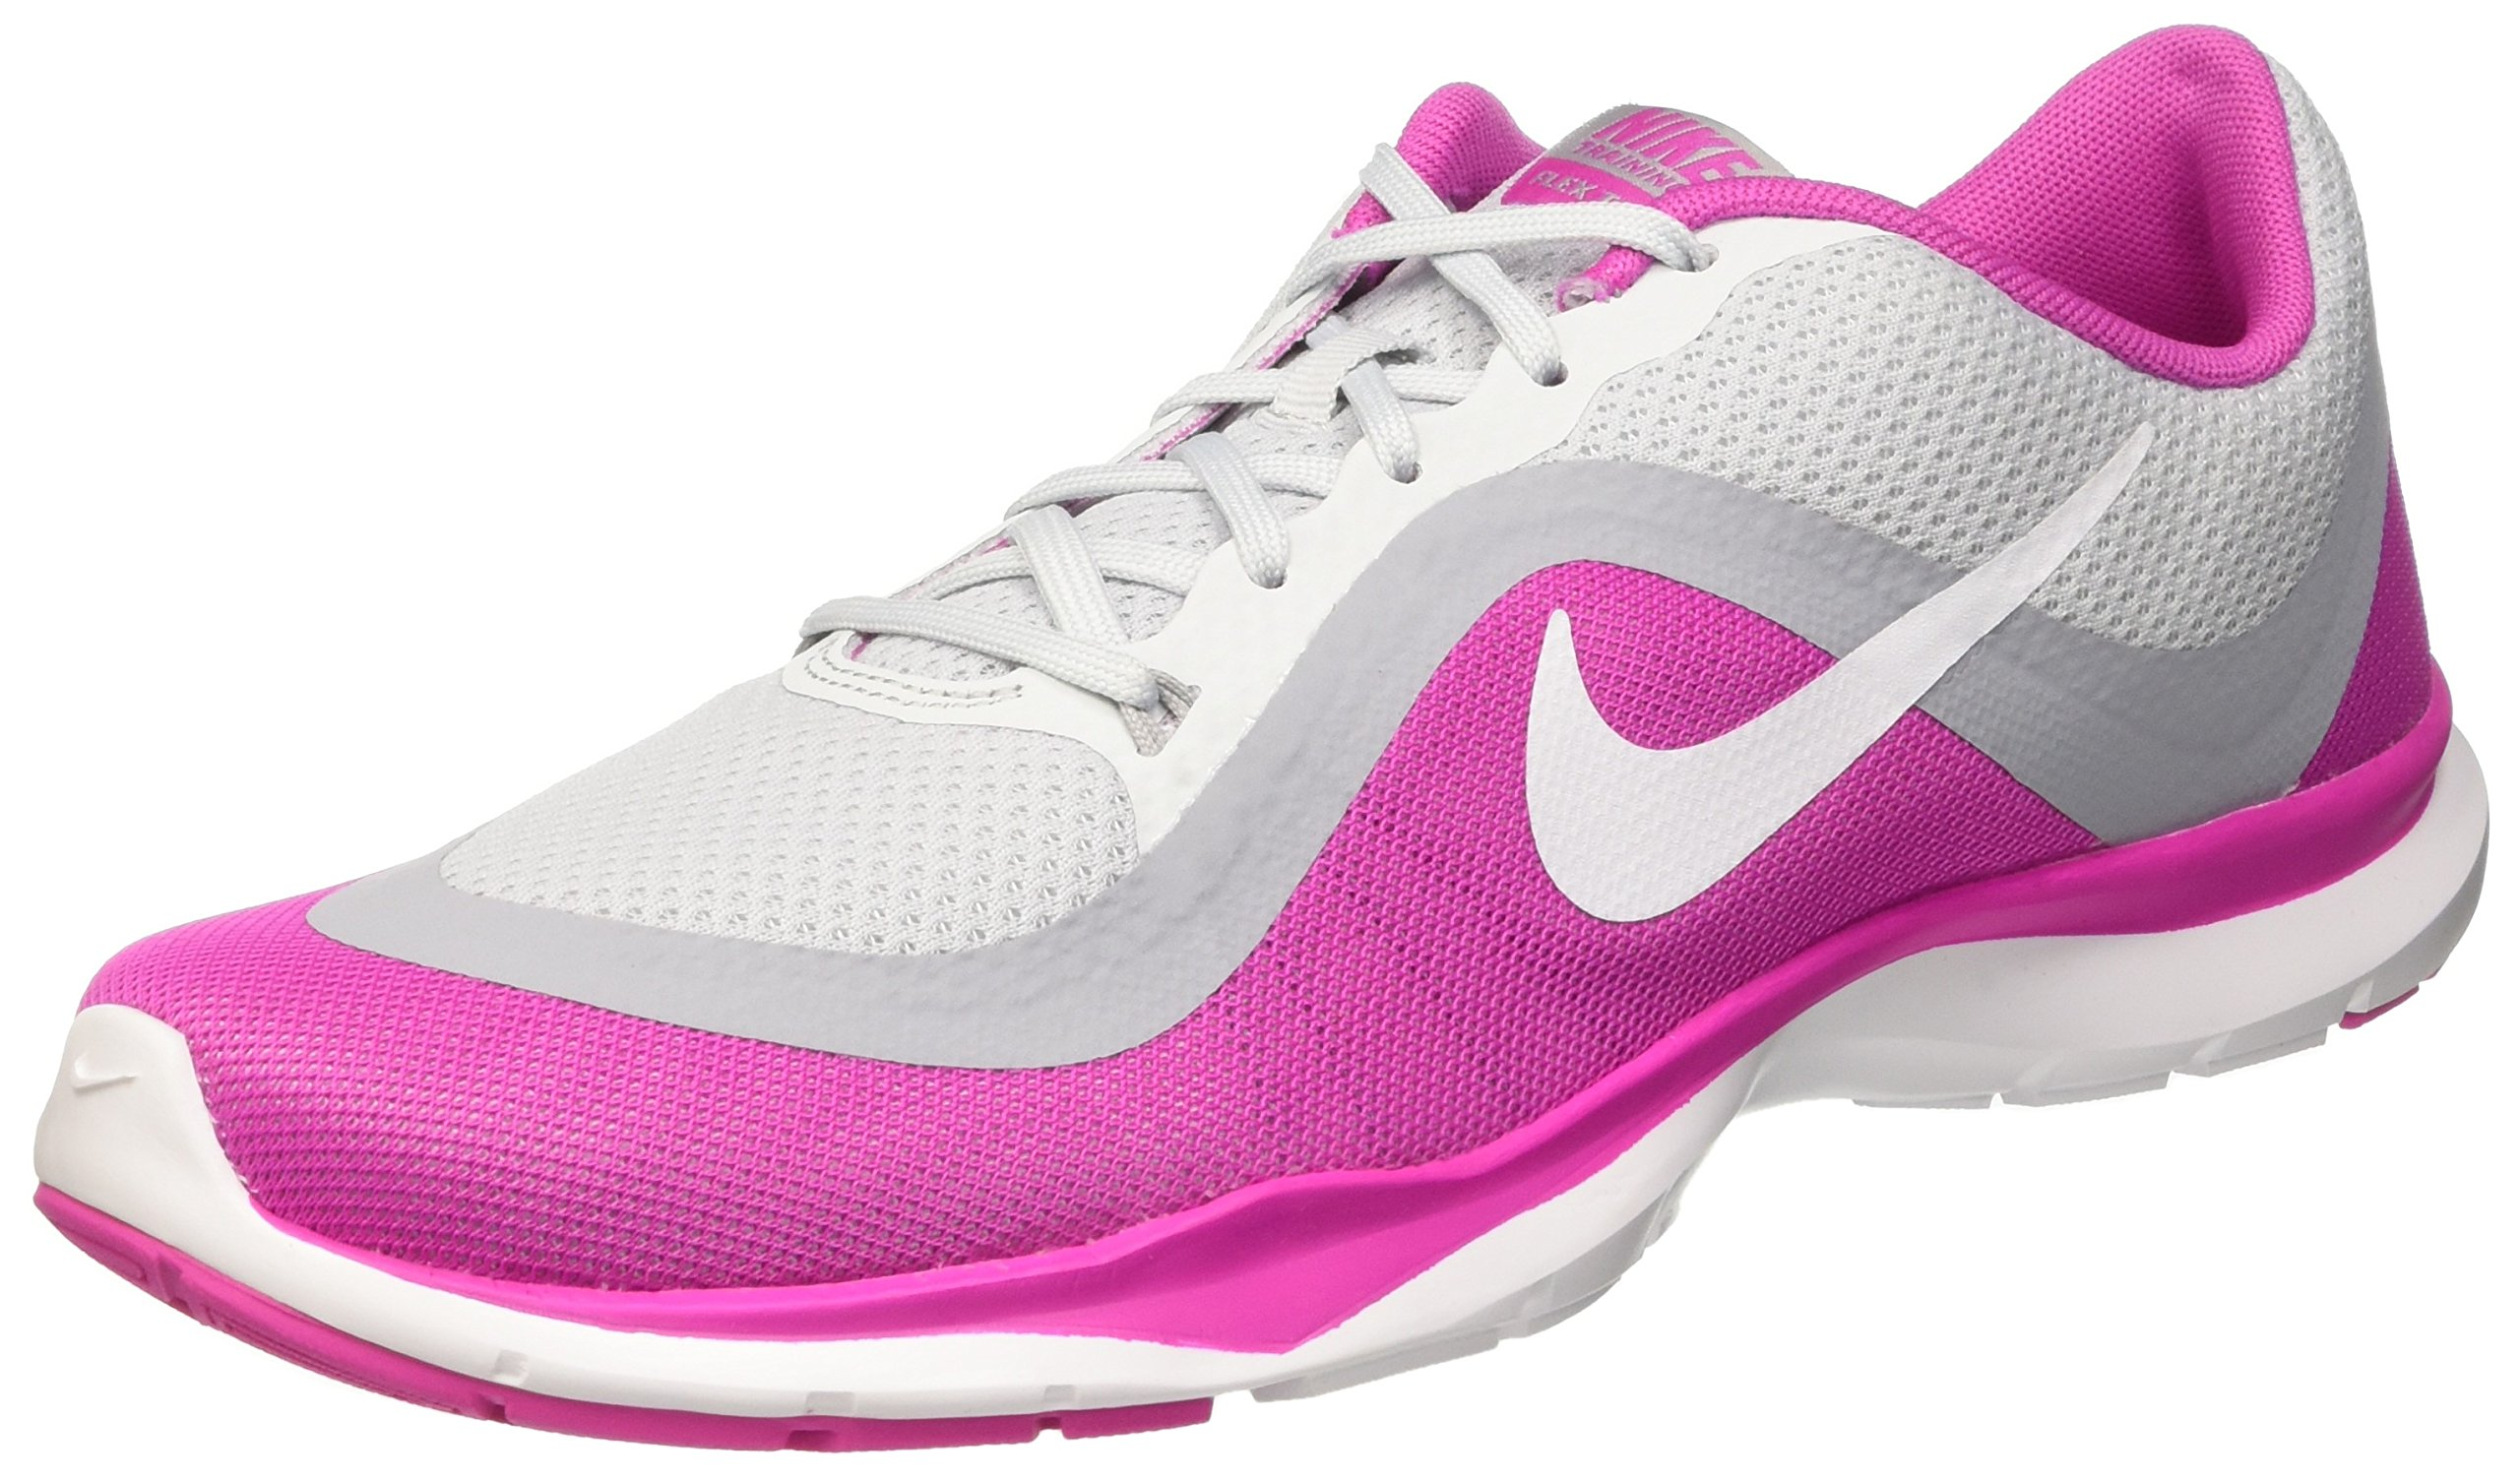 premium selection afd8e 7e03f Galleon - Nike Women s Flex Trainer 6 Pure Platinum White Pink Force Wolf  Grey 6.5 B(M) US